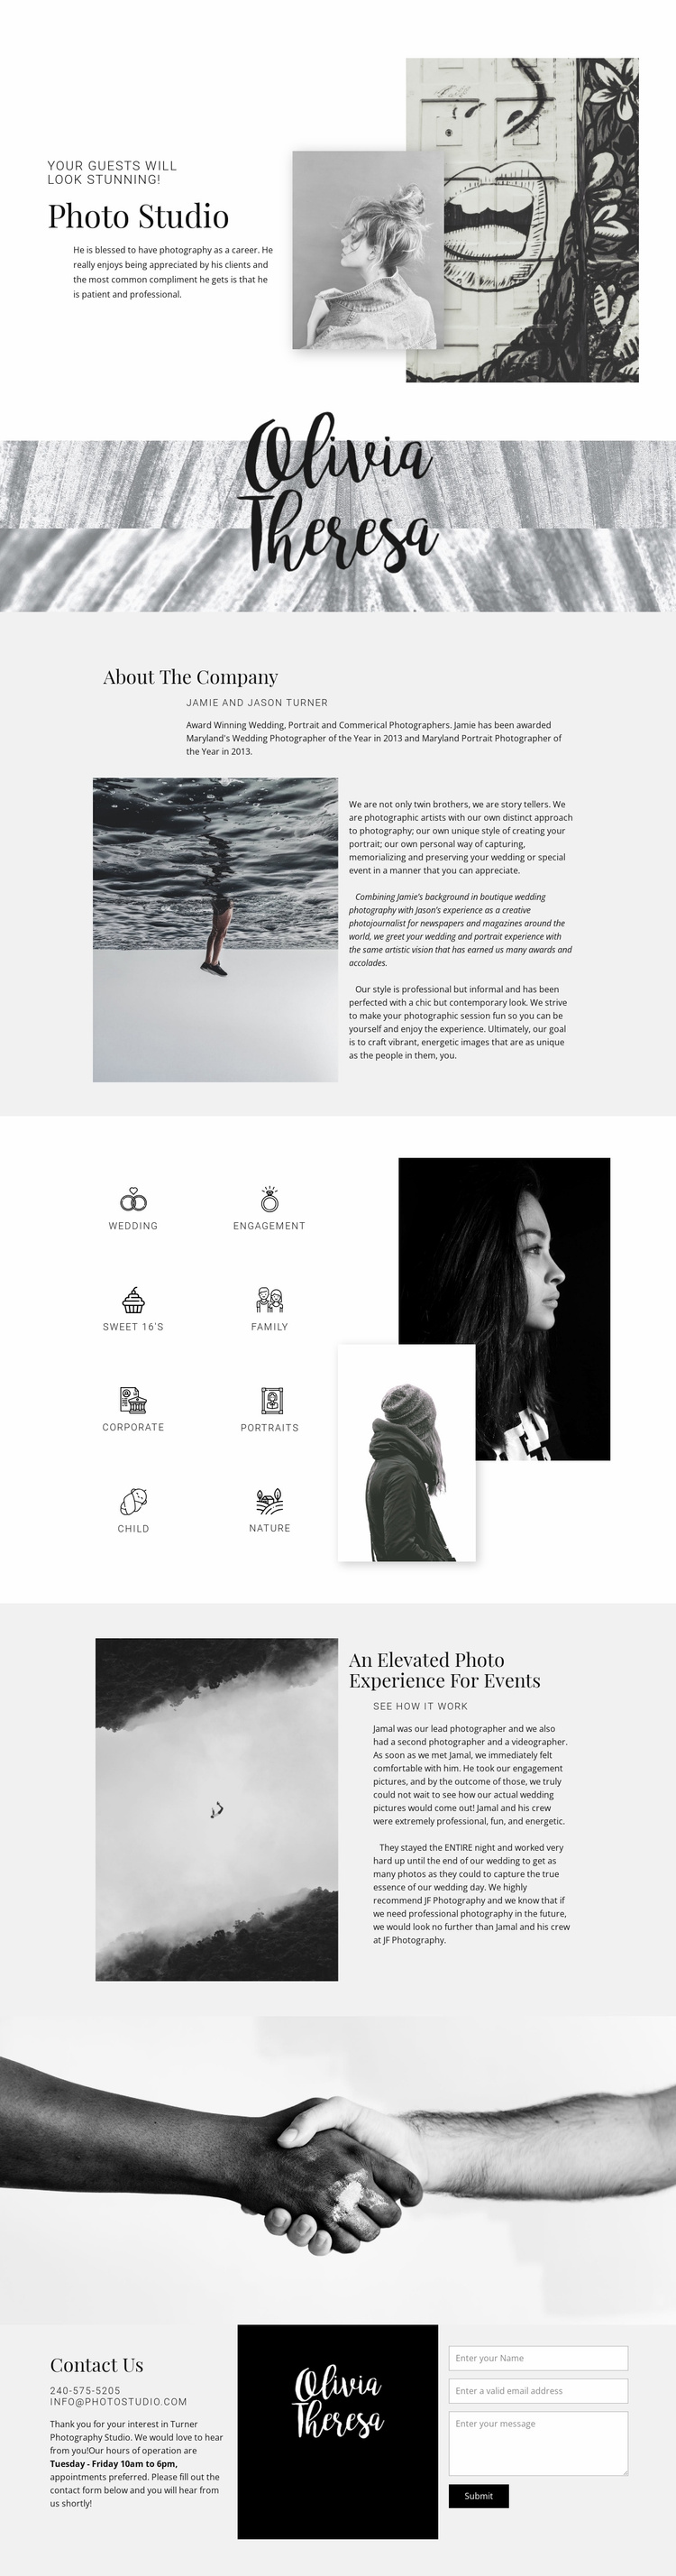 Ideas brought to live art Landing Page